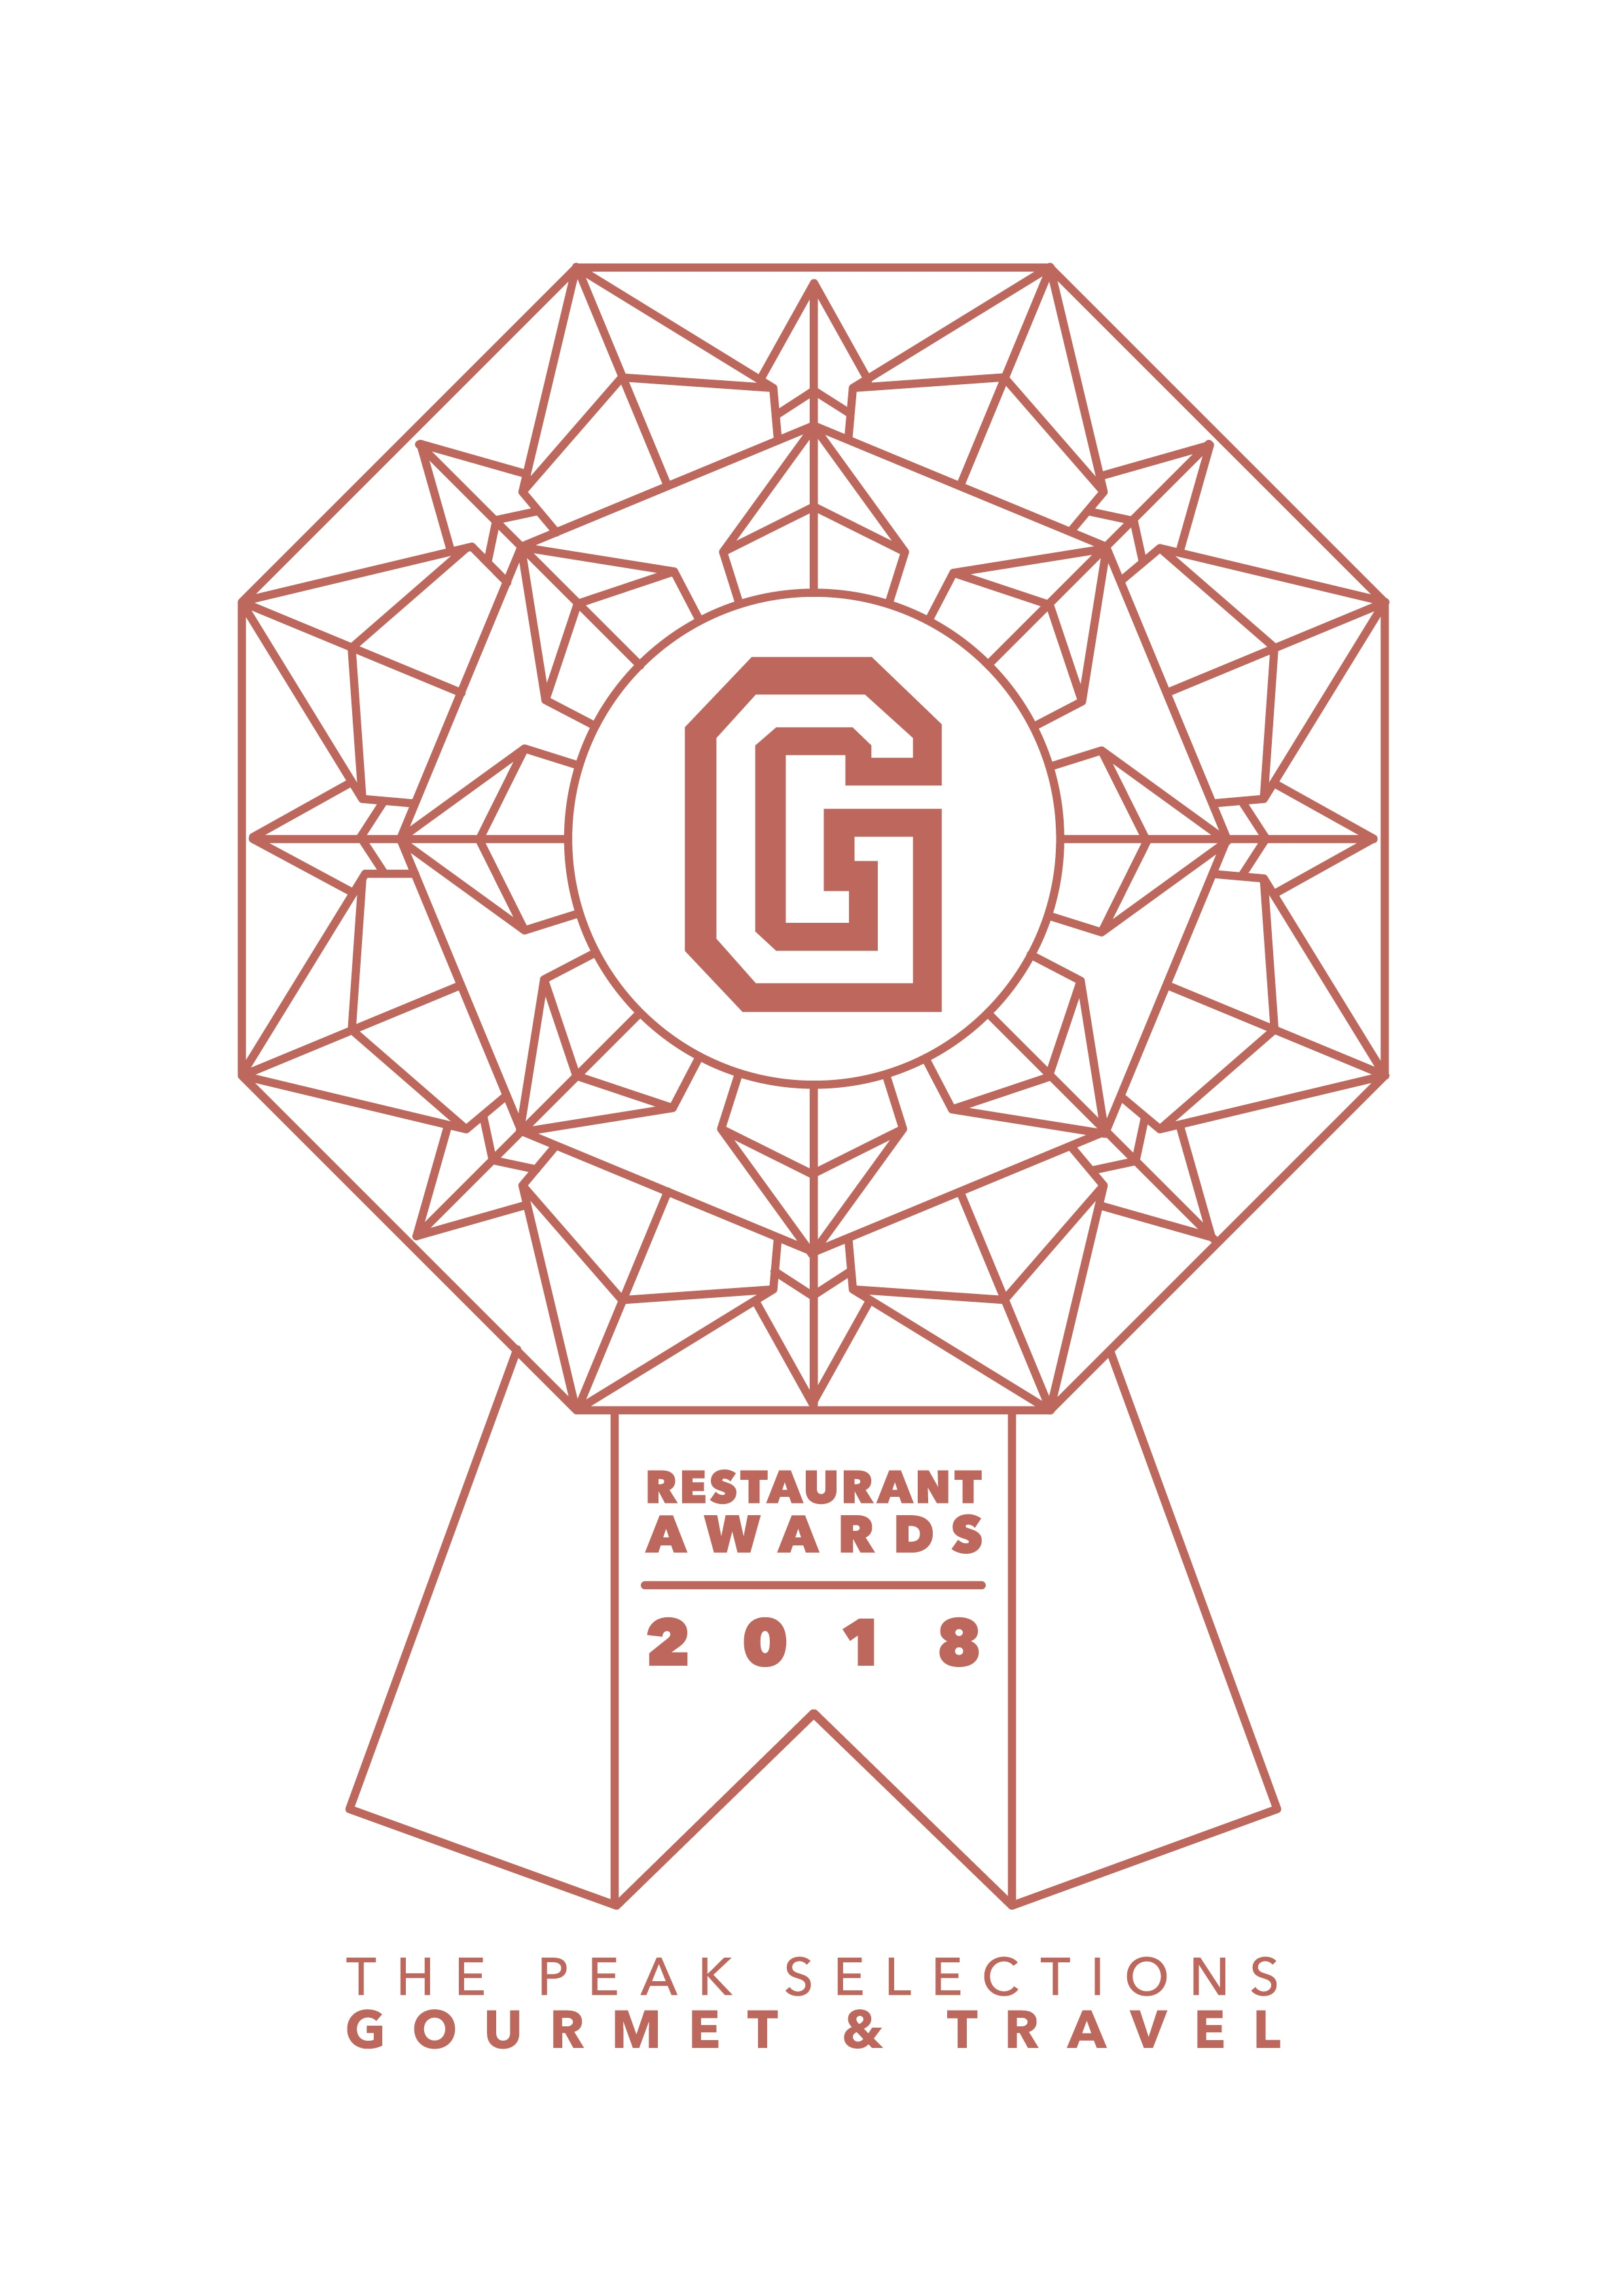 G Restaurant Awards 2018 — Awards of Excellence